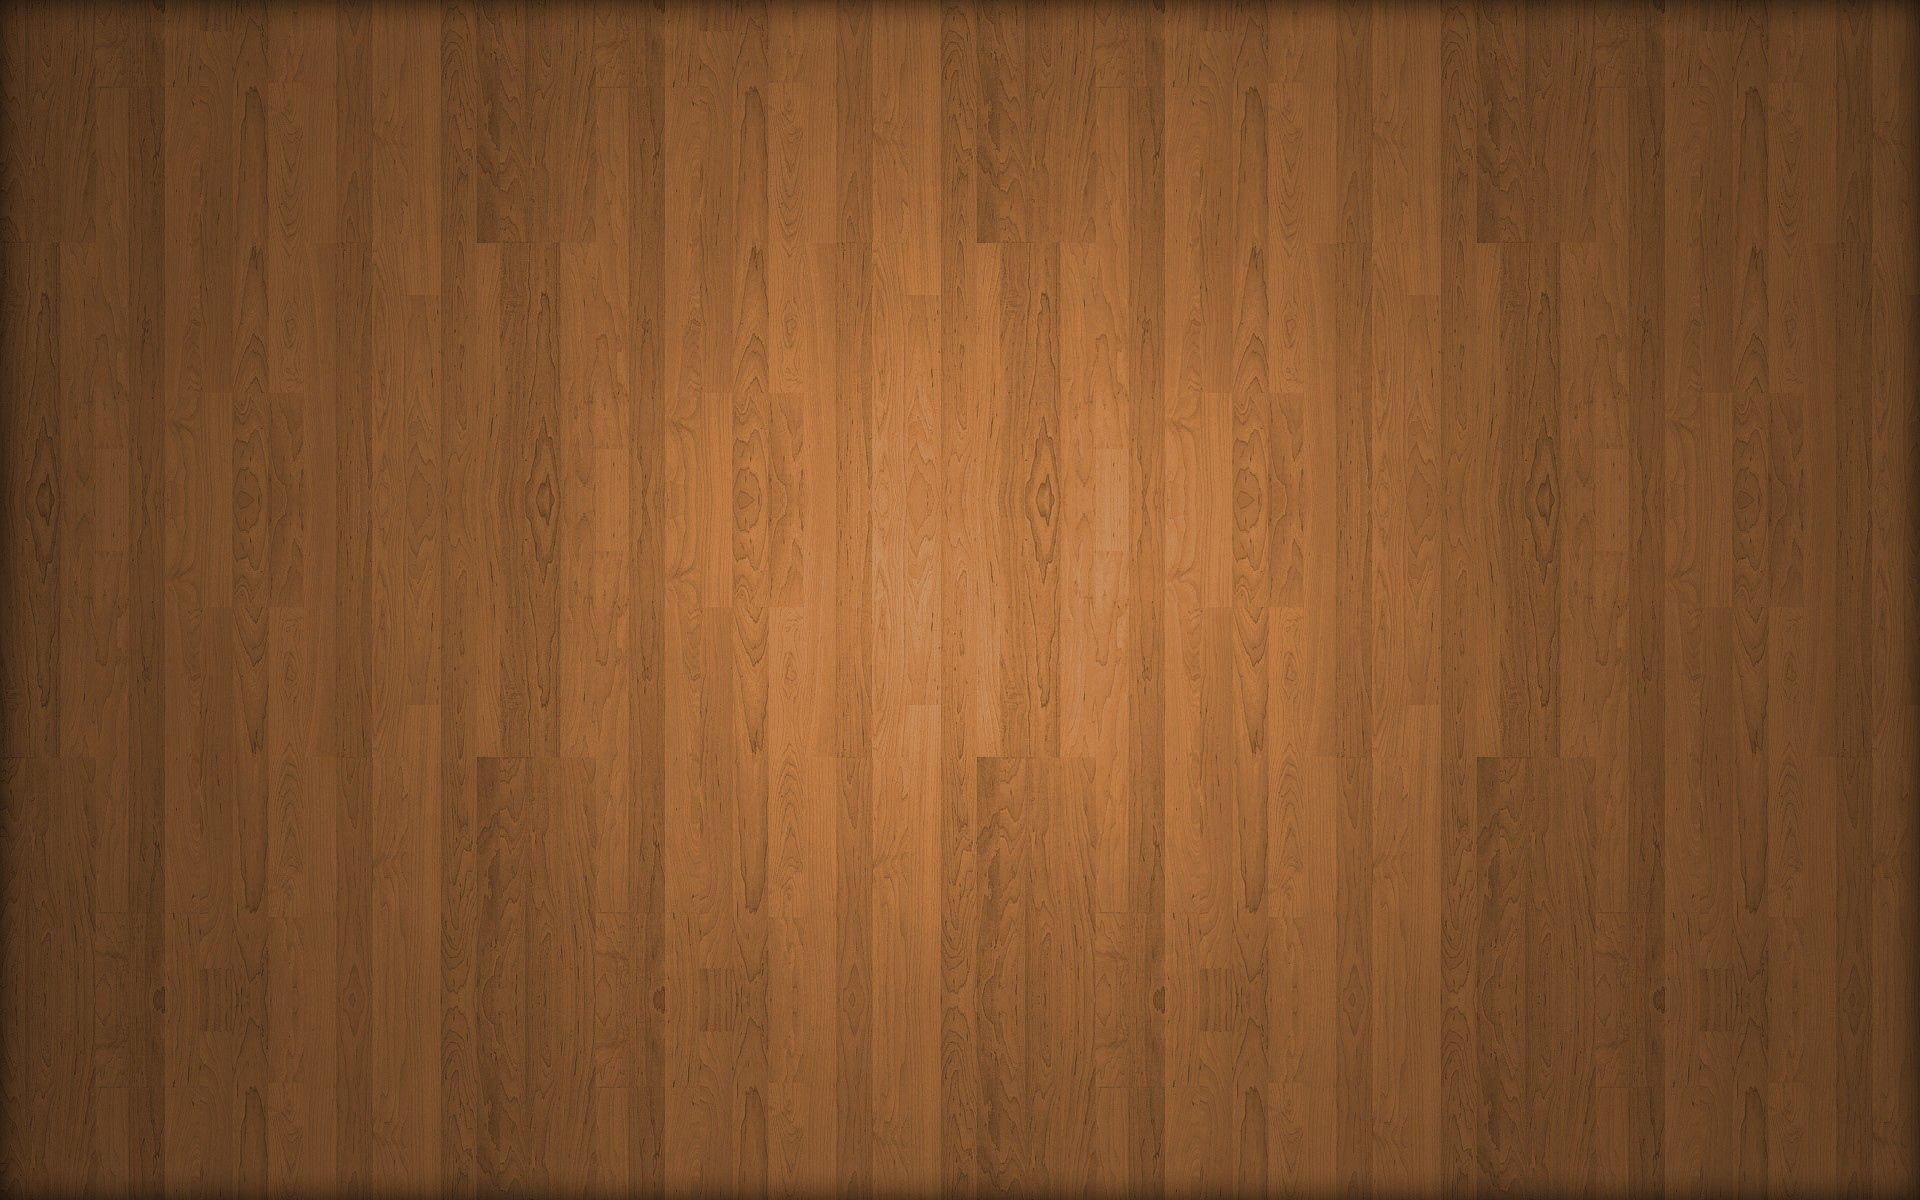 95551 download wallpaper Textures, Texture, Wood, Tree, Planks, Board, Parquet, Surface screensavers and pictures for free